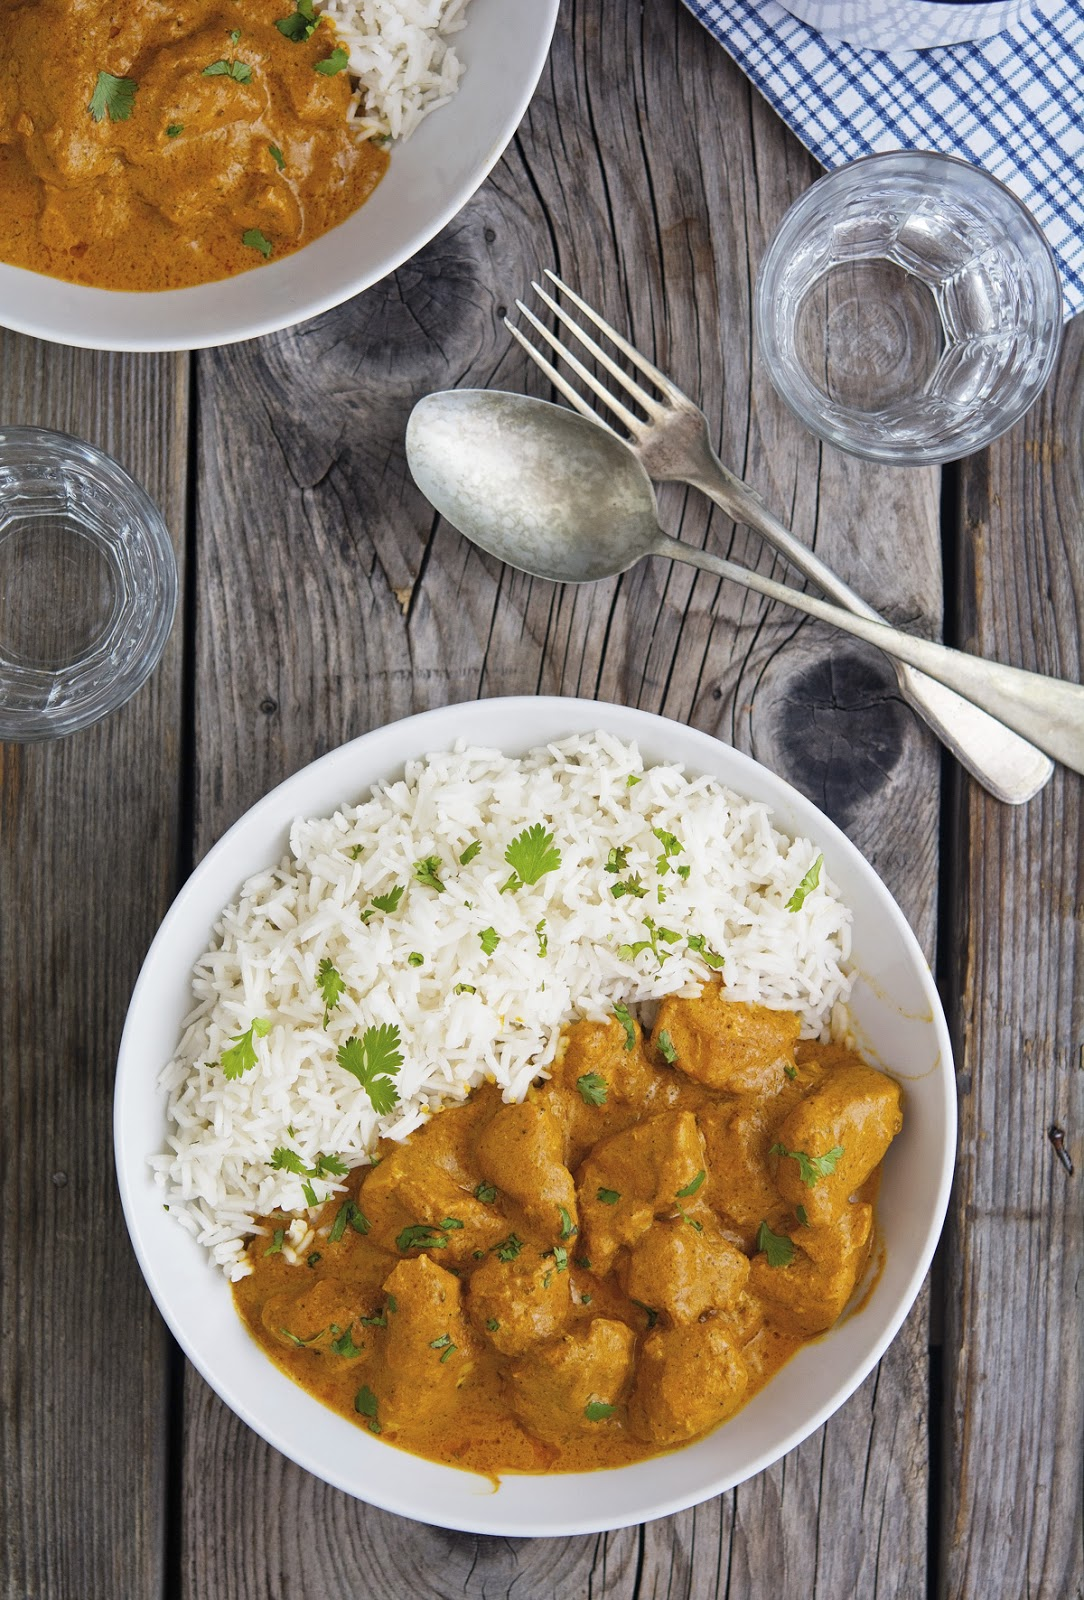 Easy Creamy Crock-Pot Butter Chicken (Murgh Makhani)